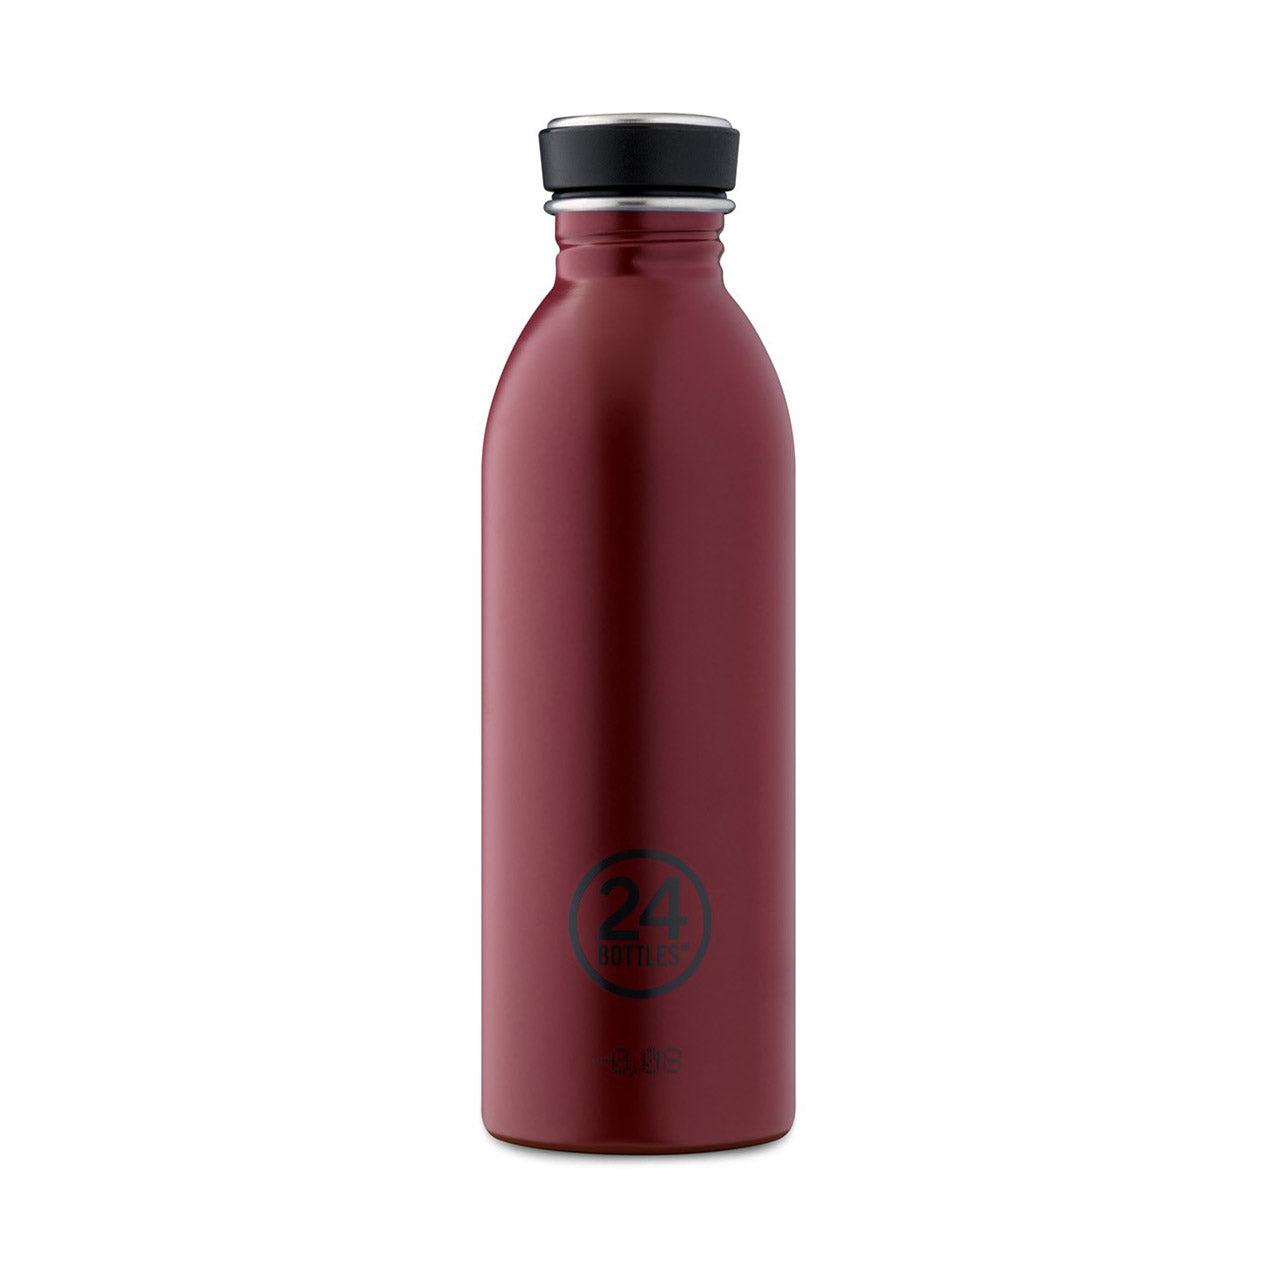 24Bottles - Earth Collection - Urban Bottle - Stainless Steel Drink Bottle - 500ml - Country Red